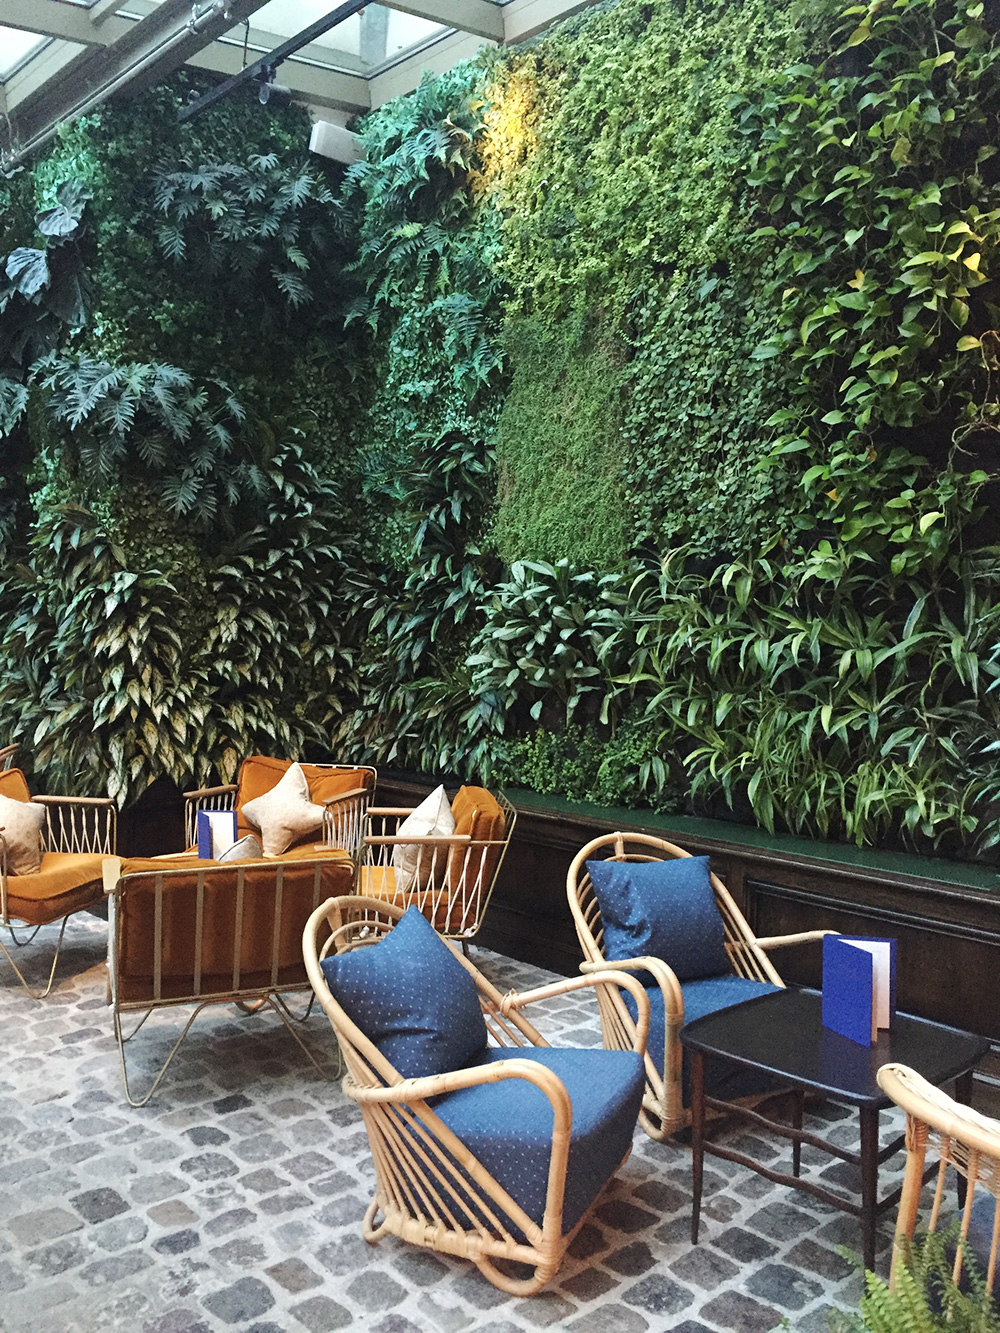 RosyCheeks-Blog-The-Hoxton-Hotel-Paris-plants